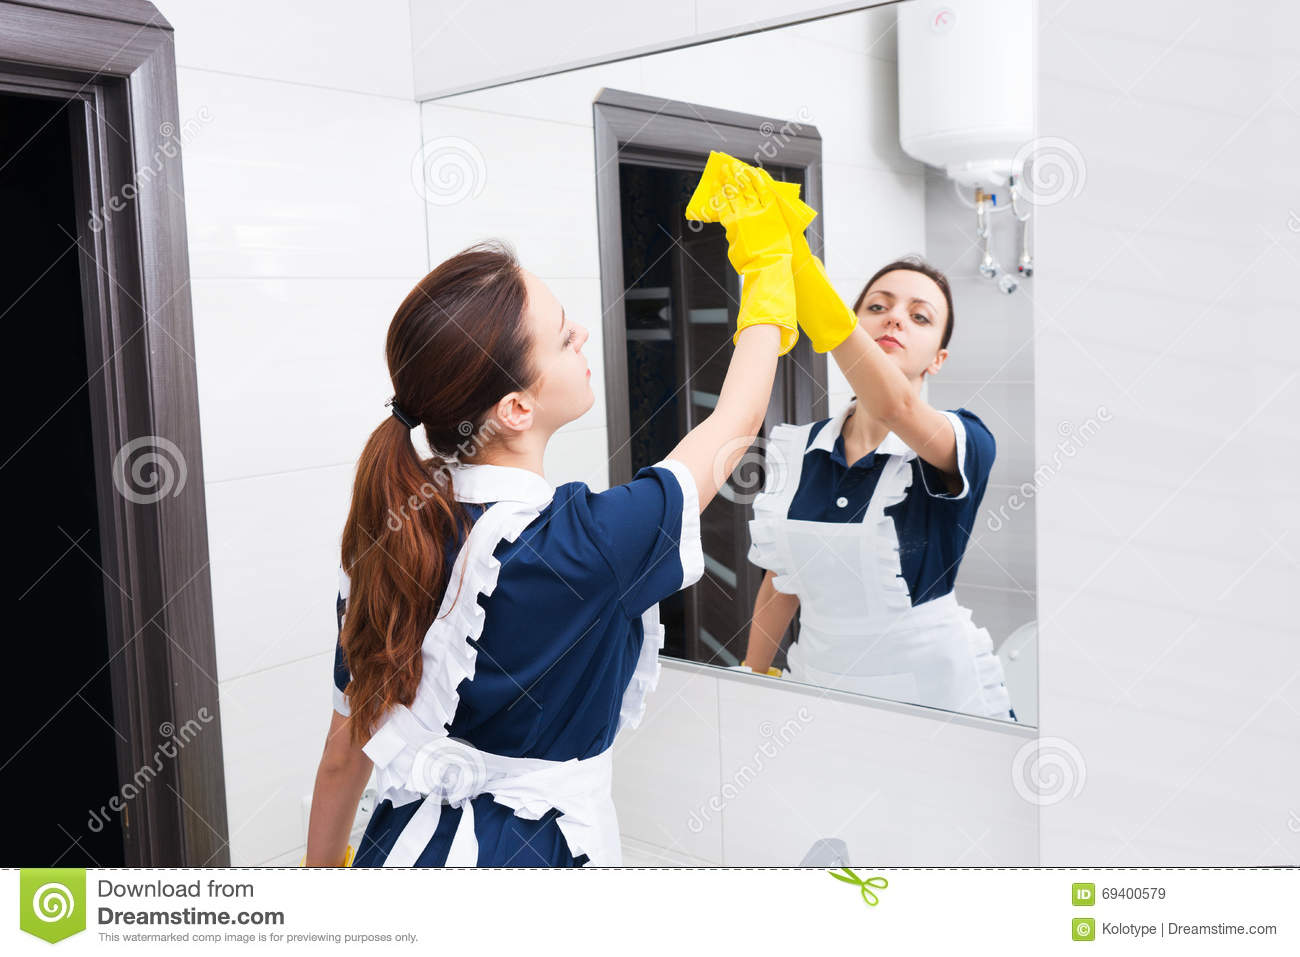 Maid Cleaning Bathroom Mirror With Sponge Stock Image Image Of - How to clean bathroom mirror